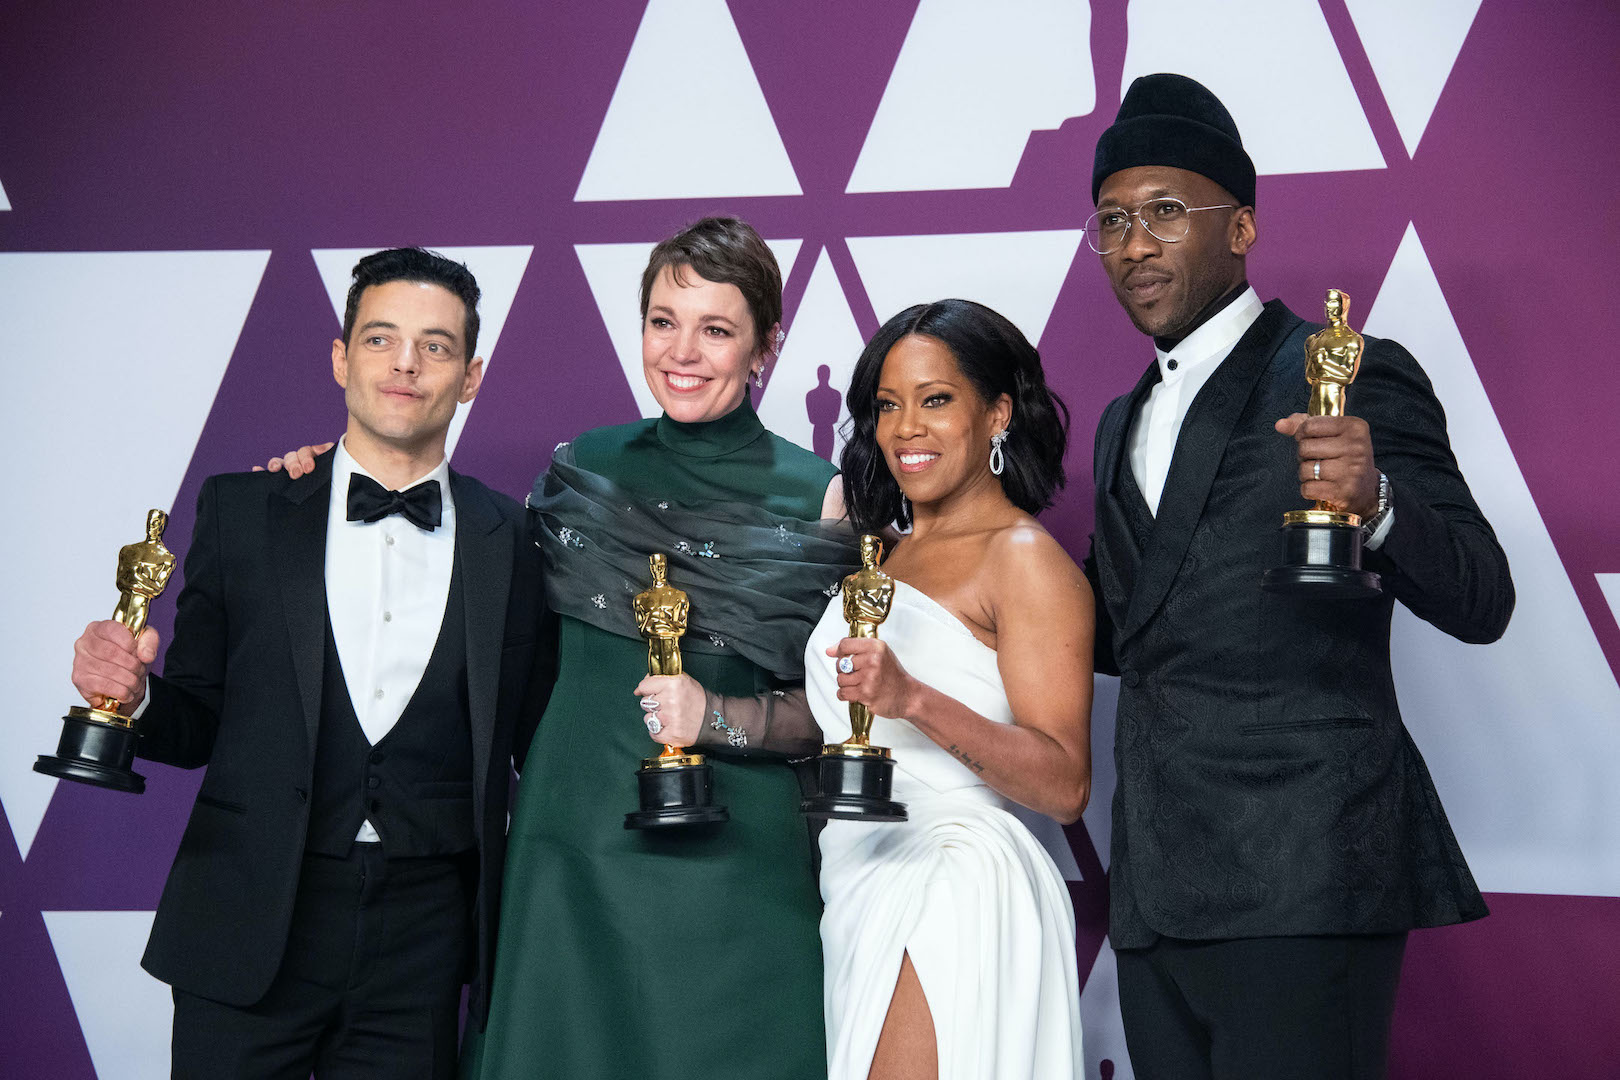 Oscar winners Mahershala Ali, Olivia Colman, Regina King and Rami Malek will present at the 92nd Oscars. The Academy Awards will air live Sunday, Feb. 9, on ABC. (Photo by Mike Baker/©A.M.P.A.S.)